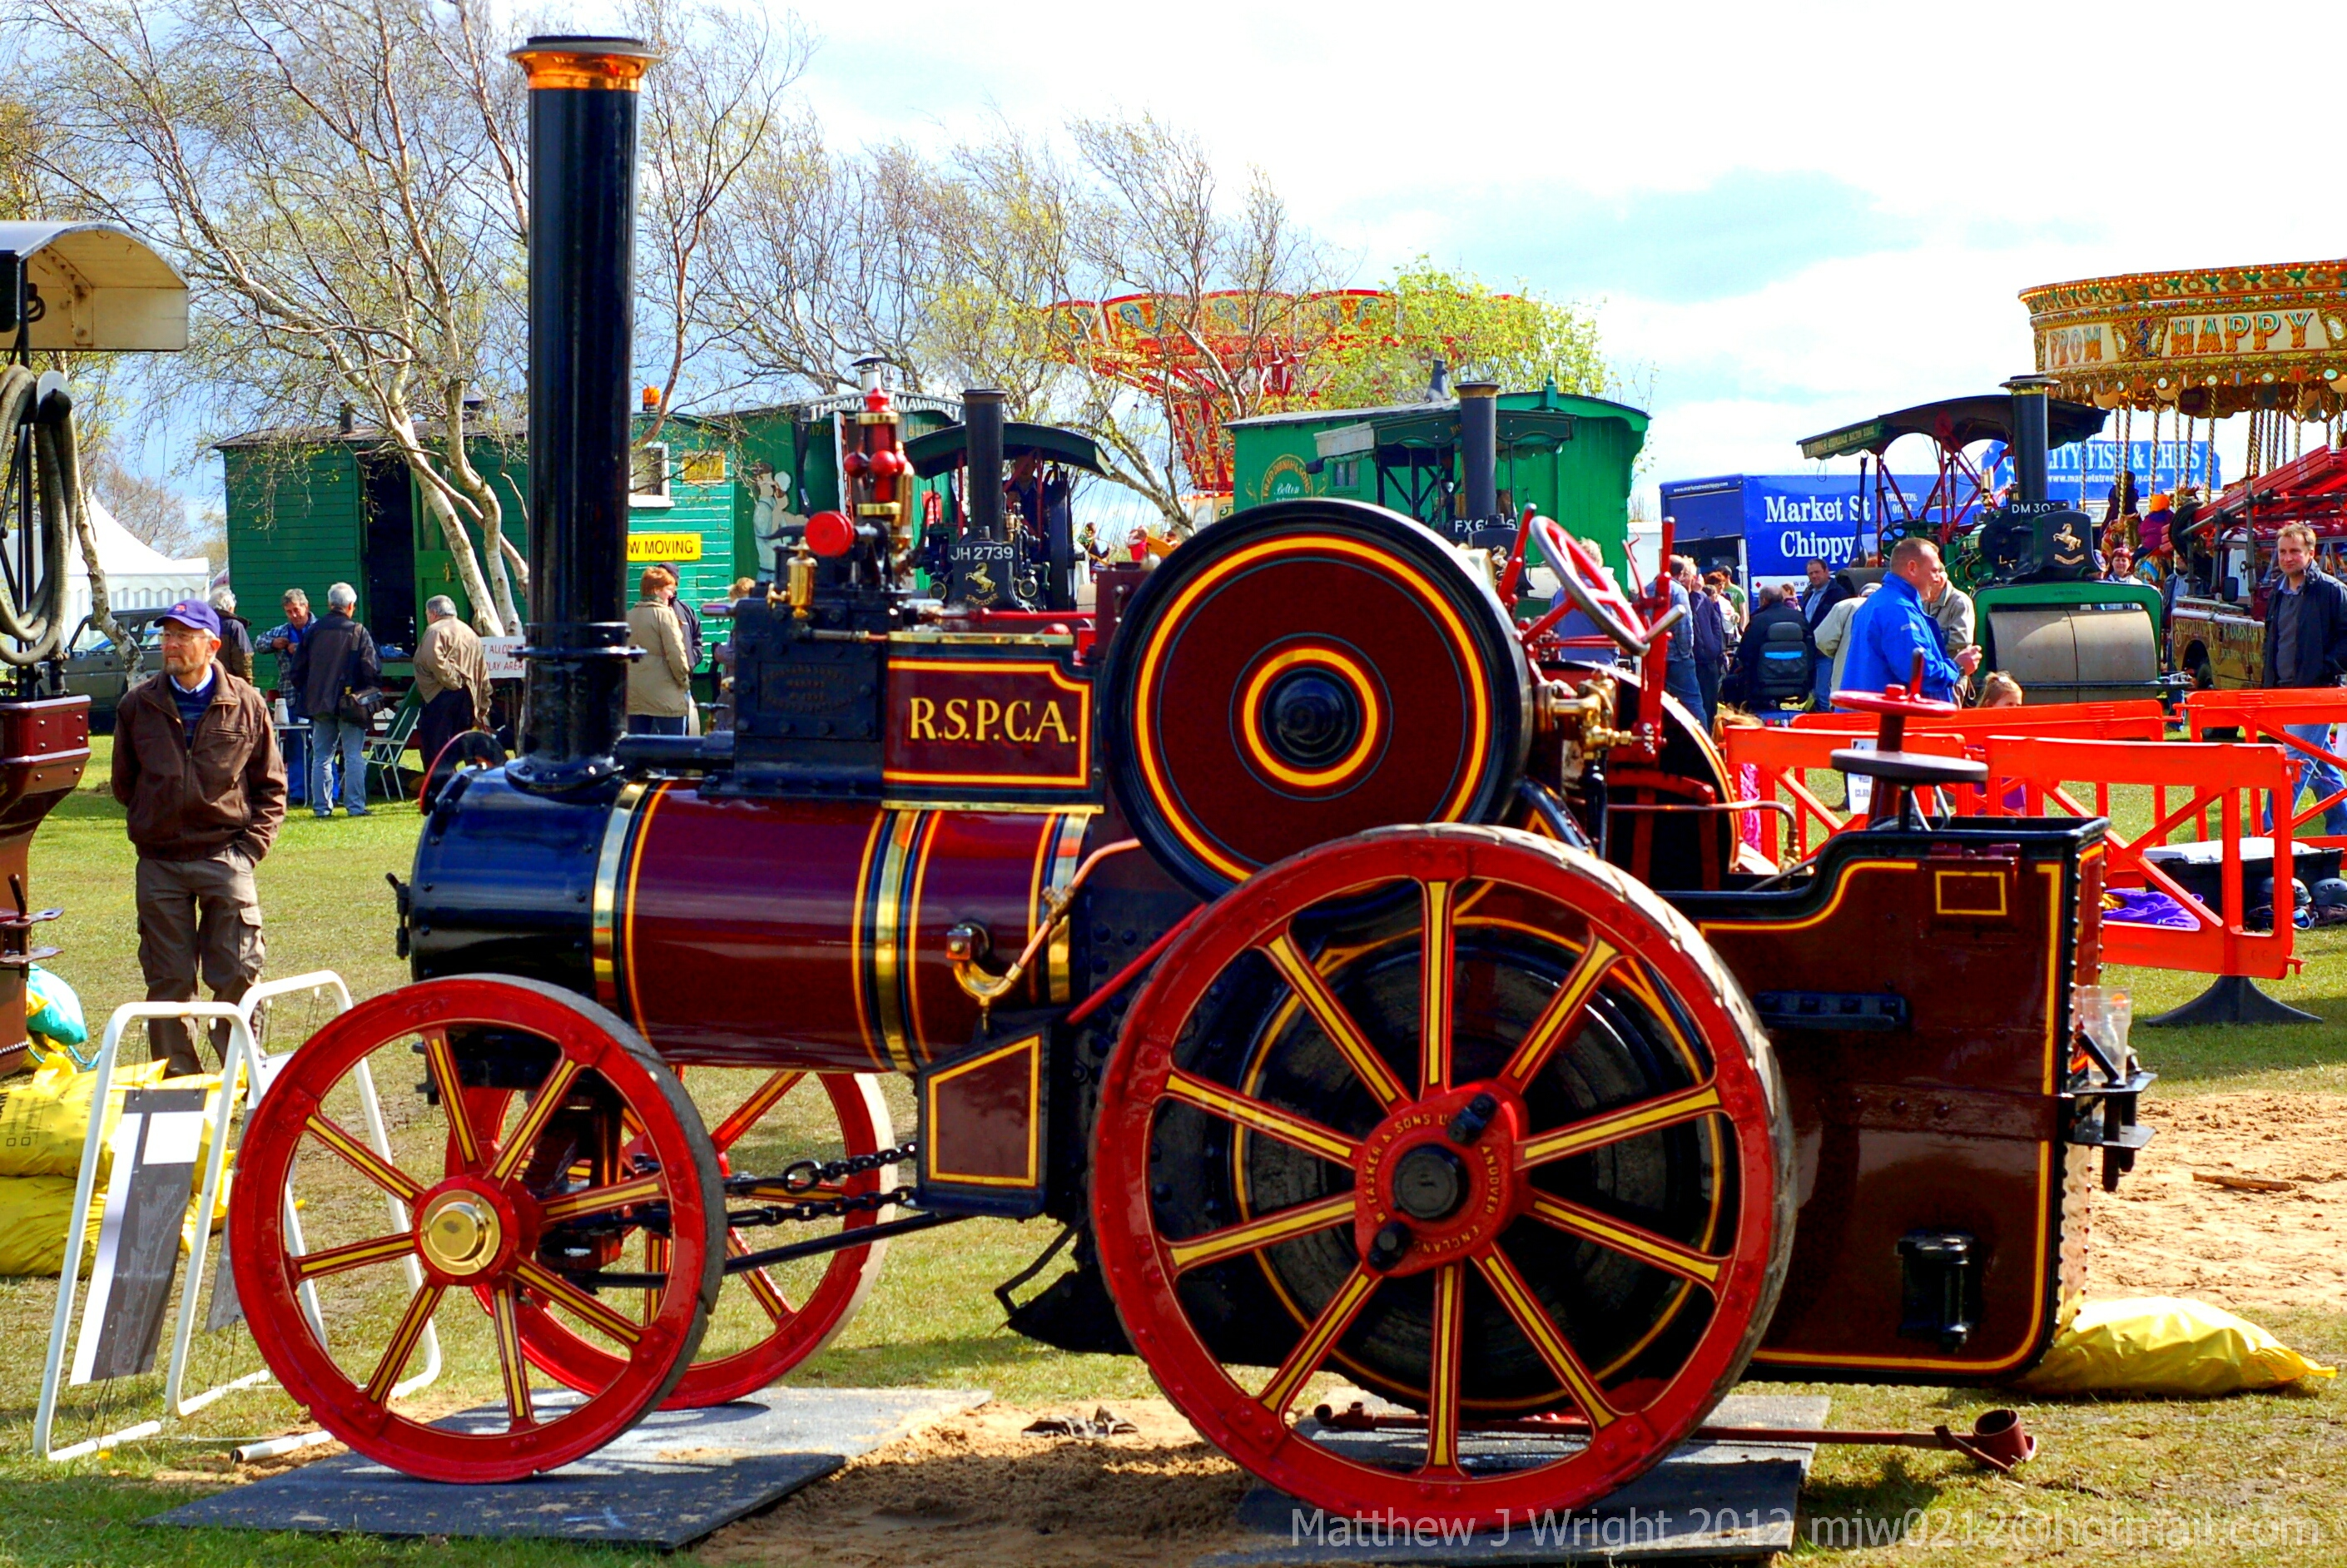 RSPCA Steam Engine at Riverside Steam Rally